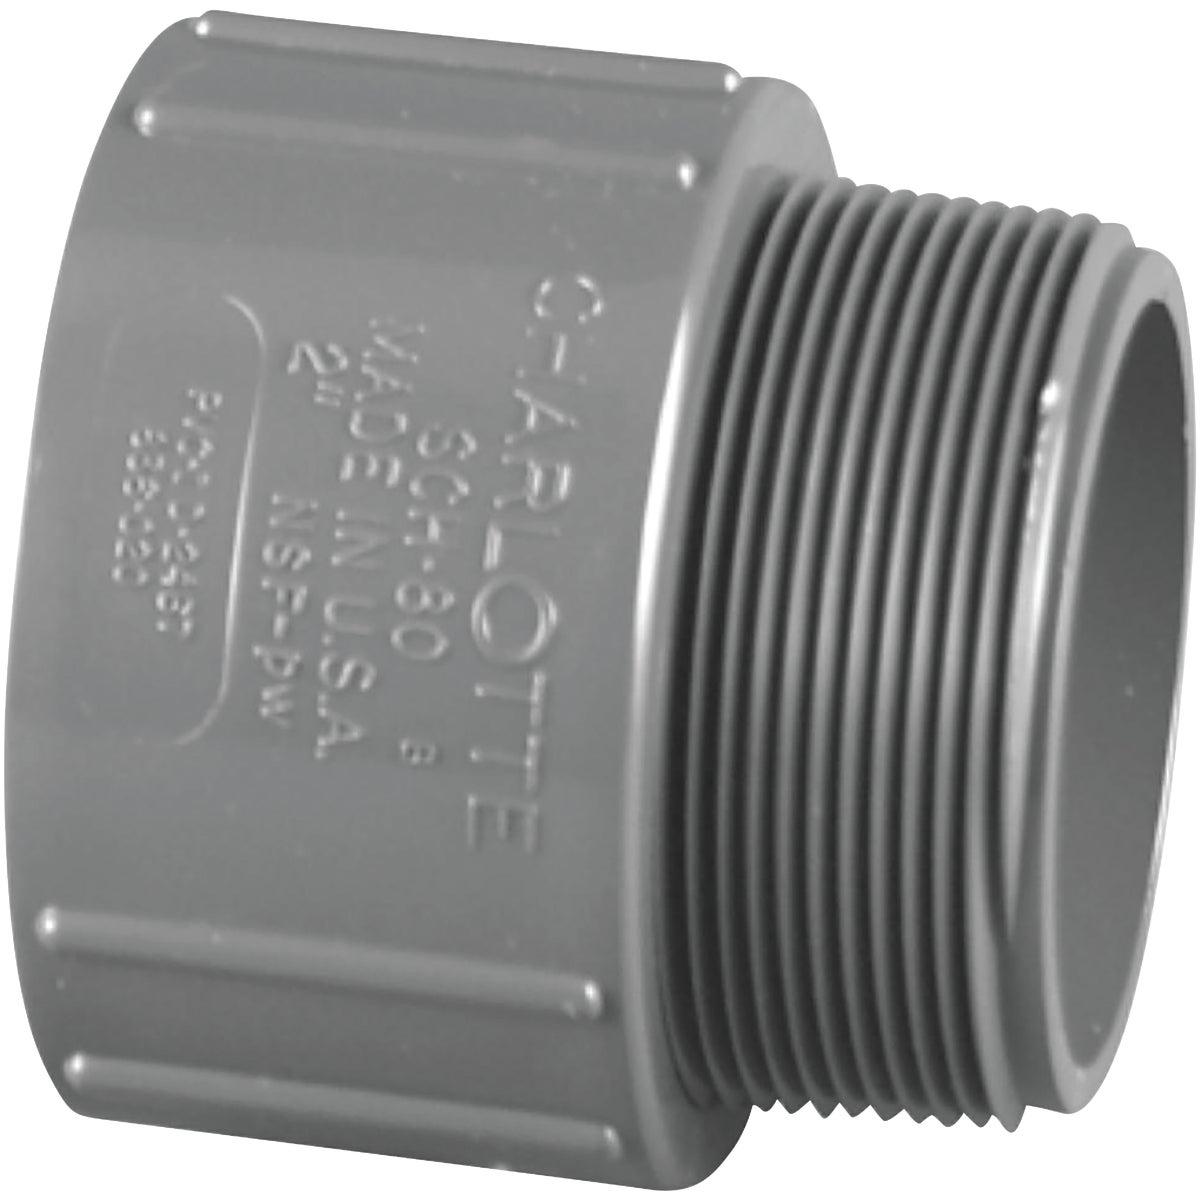 1-1/2 SCH80 MALE ADAPTER - 304158 by Genova Inc